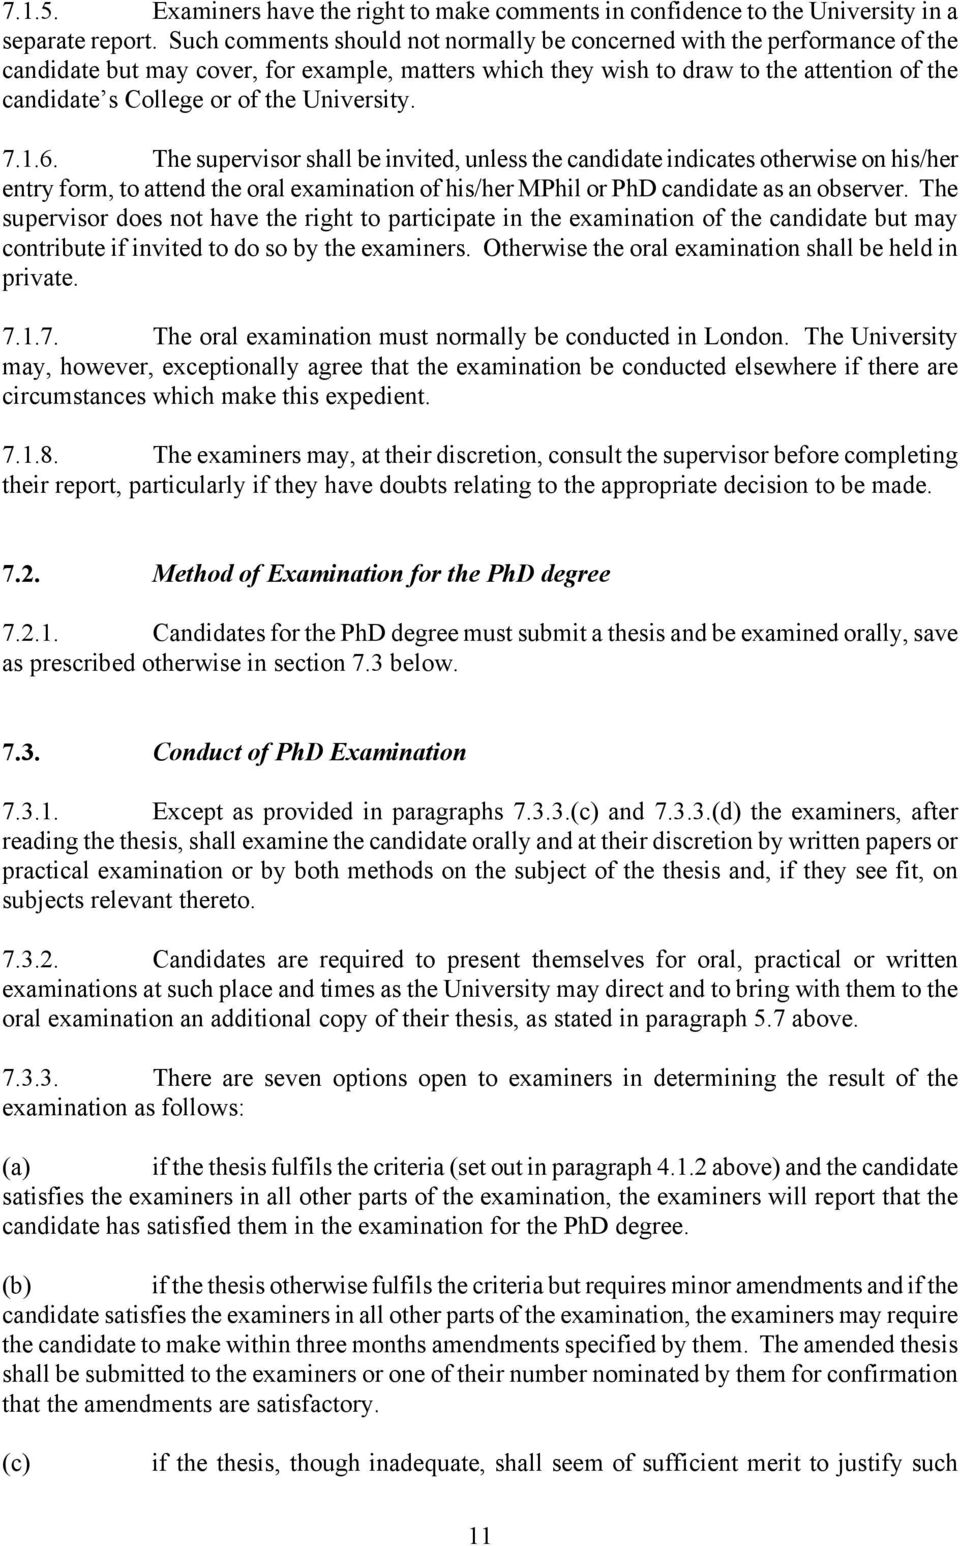 University. 7.1.6. The supervisor shall be invited, unless the candidate indicates otherwise on his/her entry form, to attend the oral examination of his/her MPhil or PhD candidate as an observer.